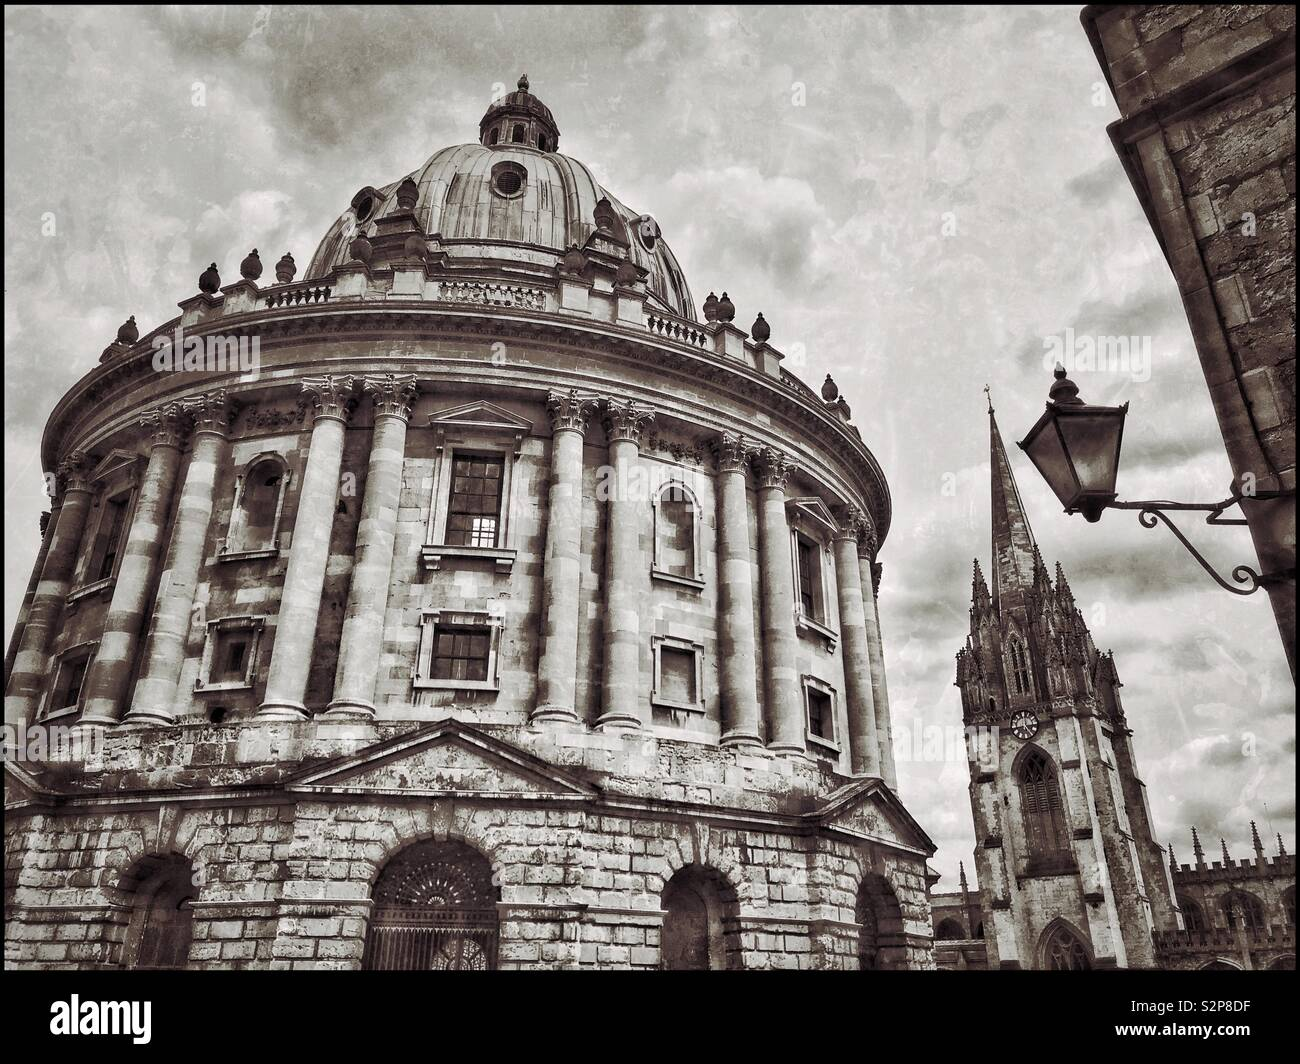 The Radcliffe Camera Building in Oxford, England. Not a real camera - but a library used by the students of Oxford University. The tall spired church is the University Church Of St. Mary the Virgin. © - Stock Image